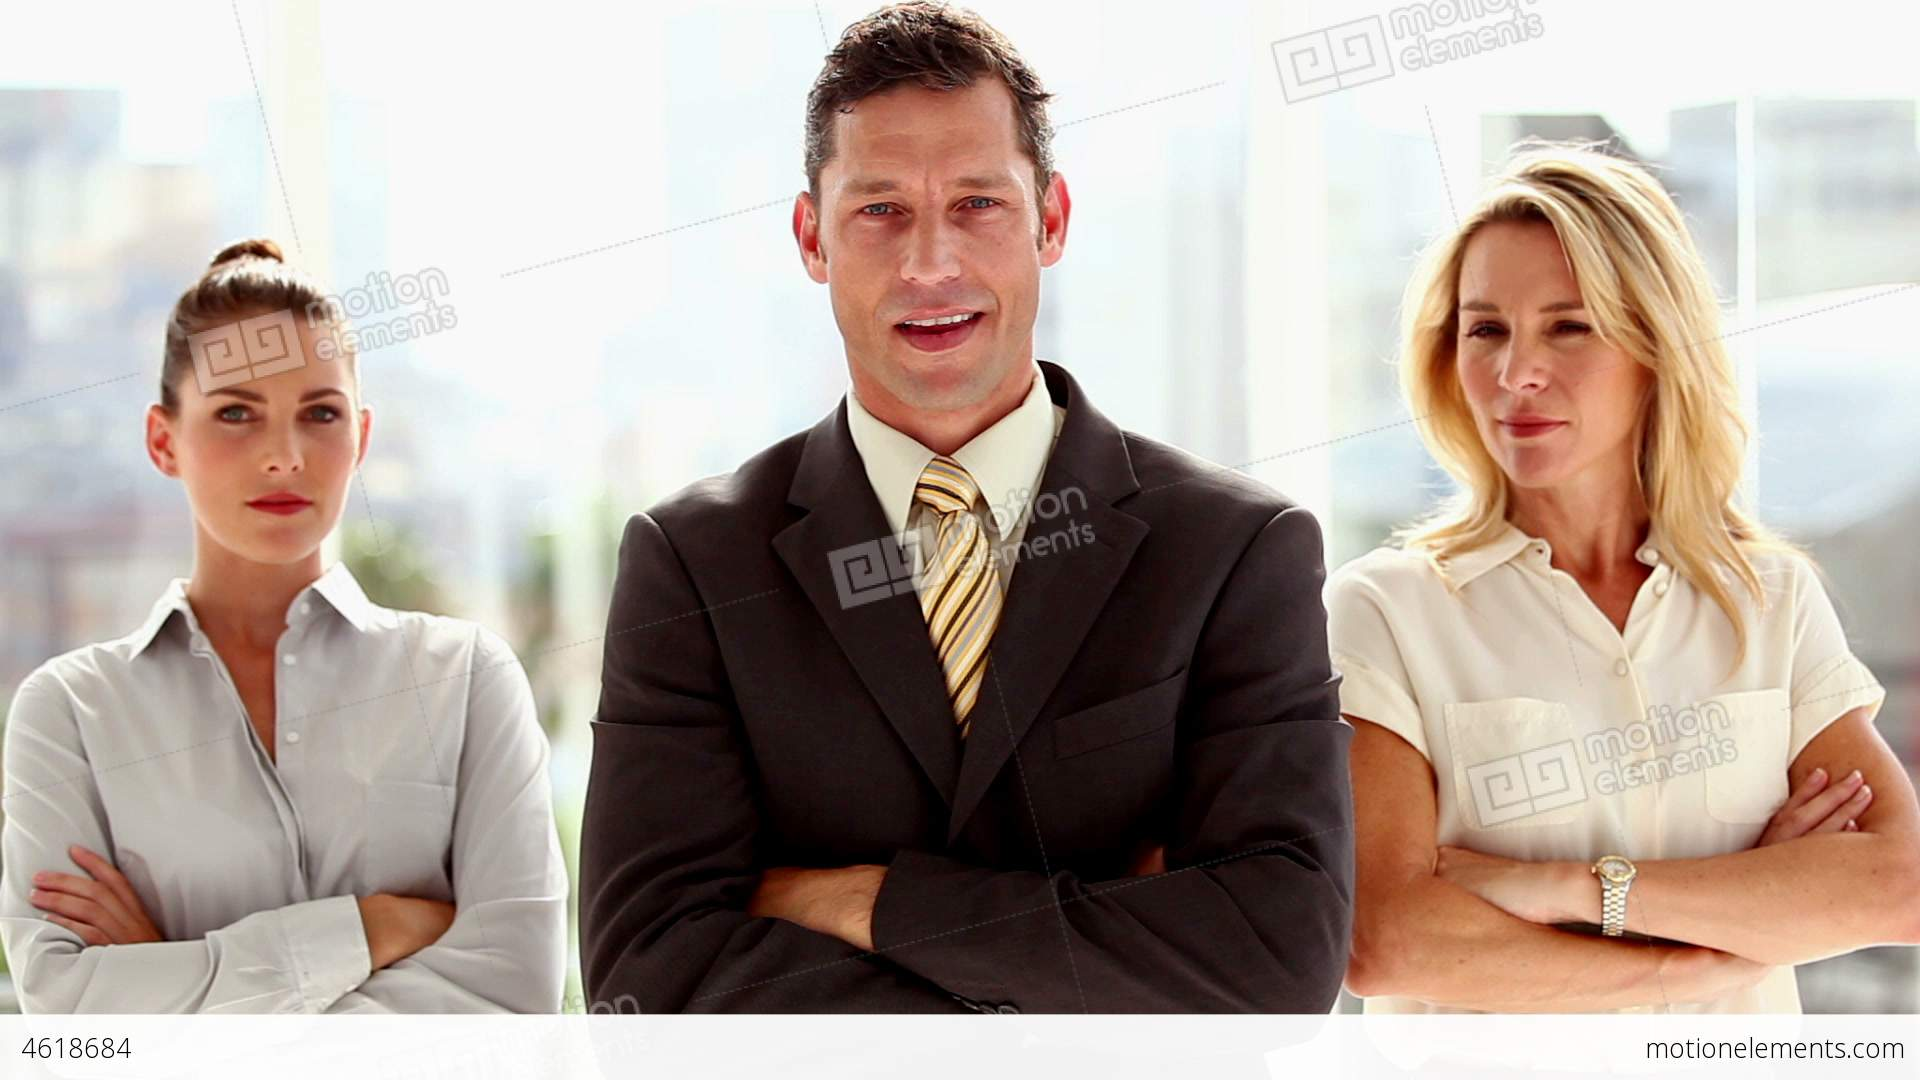 Three Smiling Business People Standing Stock video footage | 4618684